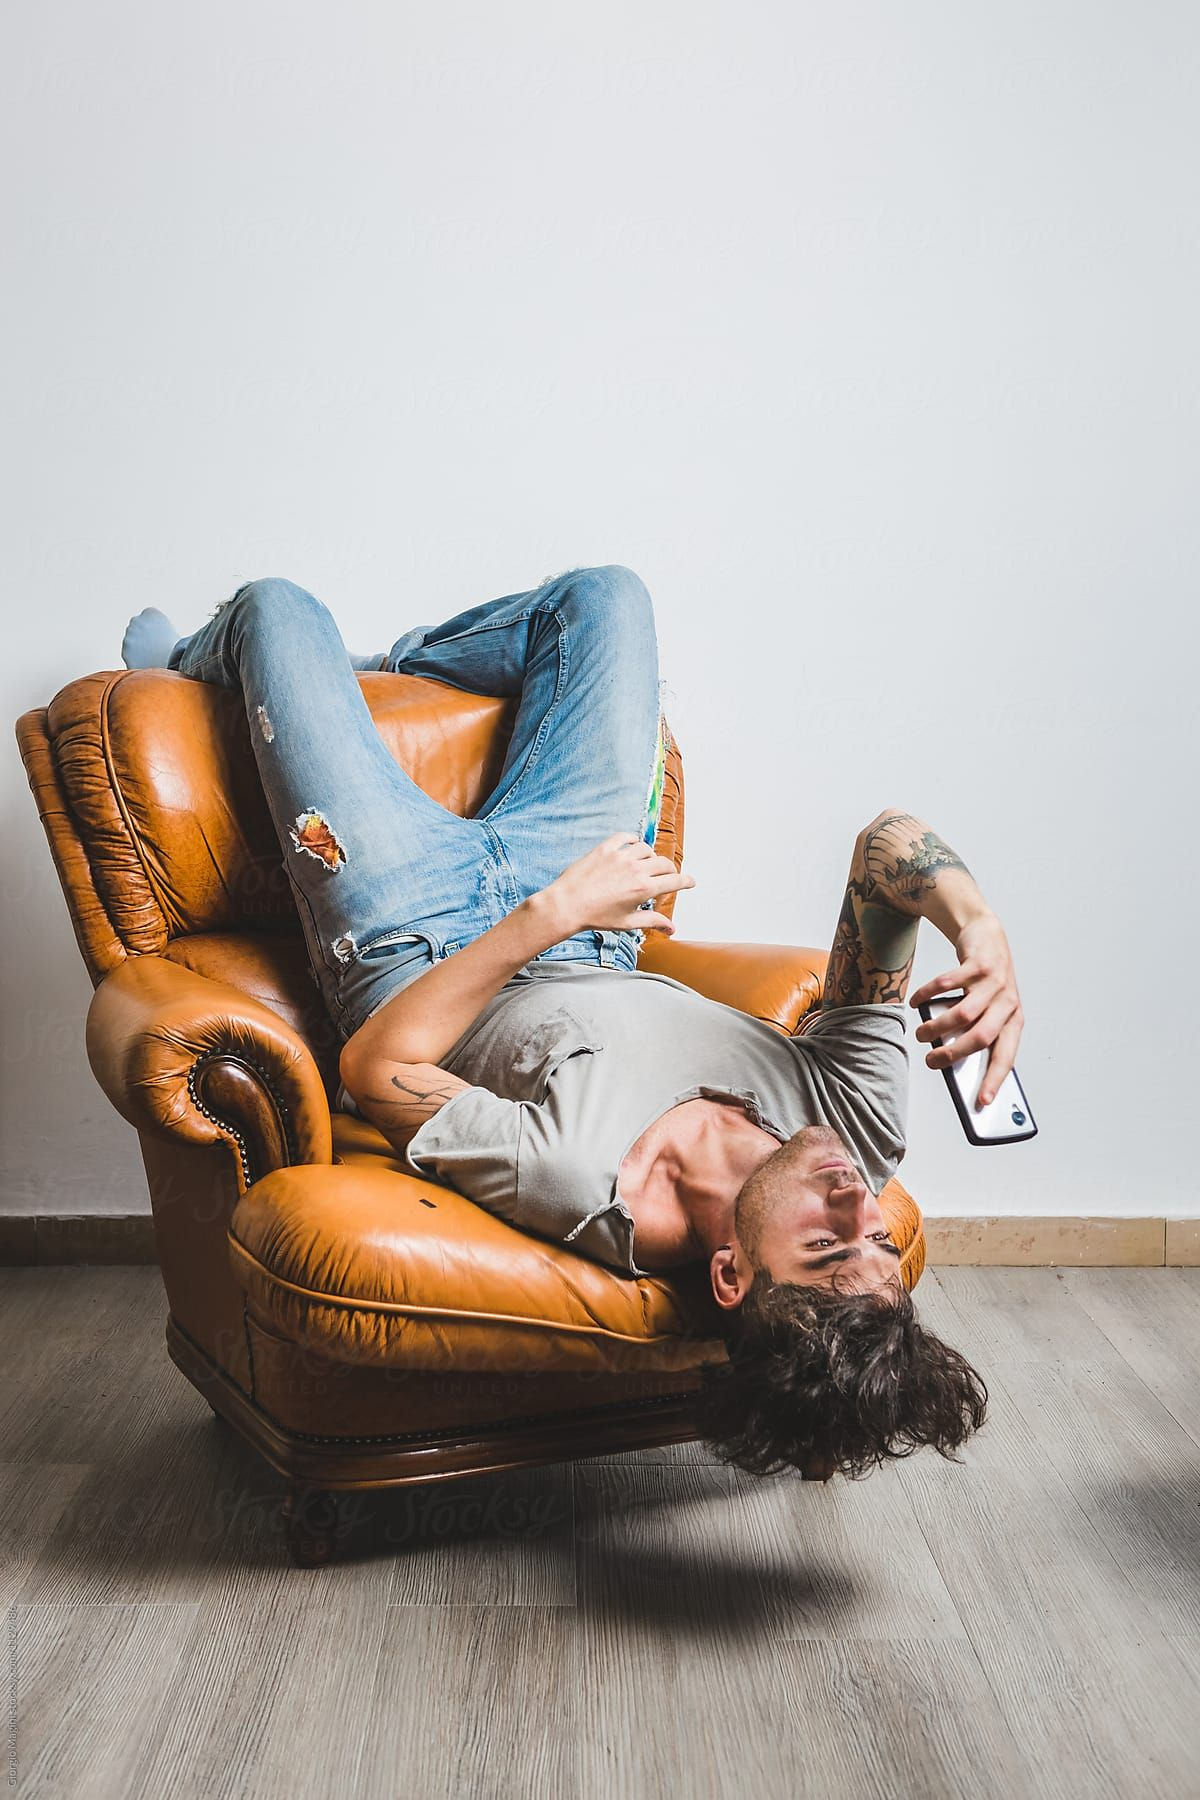 Upside Down Man Using Cellphone On A Leather Armchair By Giorgio Magini Technology Upside Do In 2020 Photography Poses For Men Model Poses Photography Sitting Poses